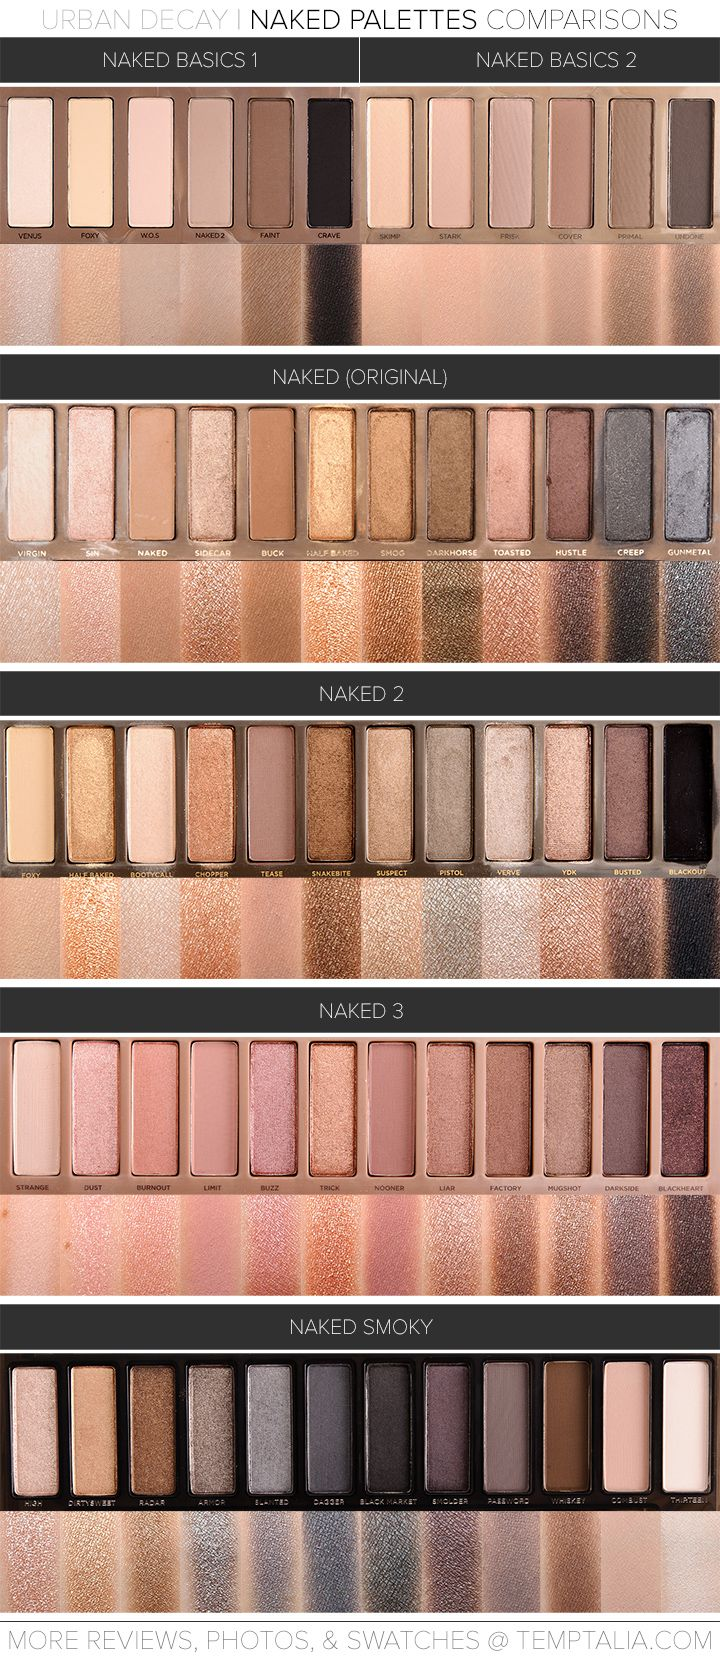 Urban Decay Naked Palettes' Comparisons & Swatches @Temptalia